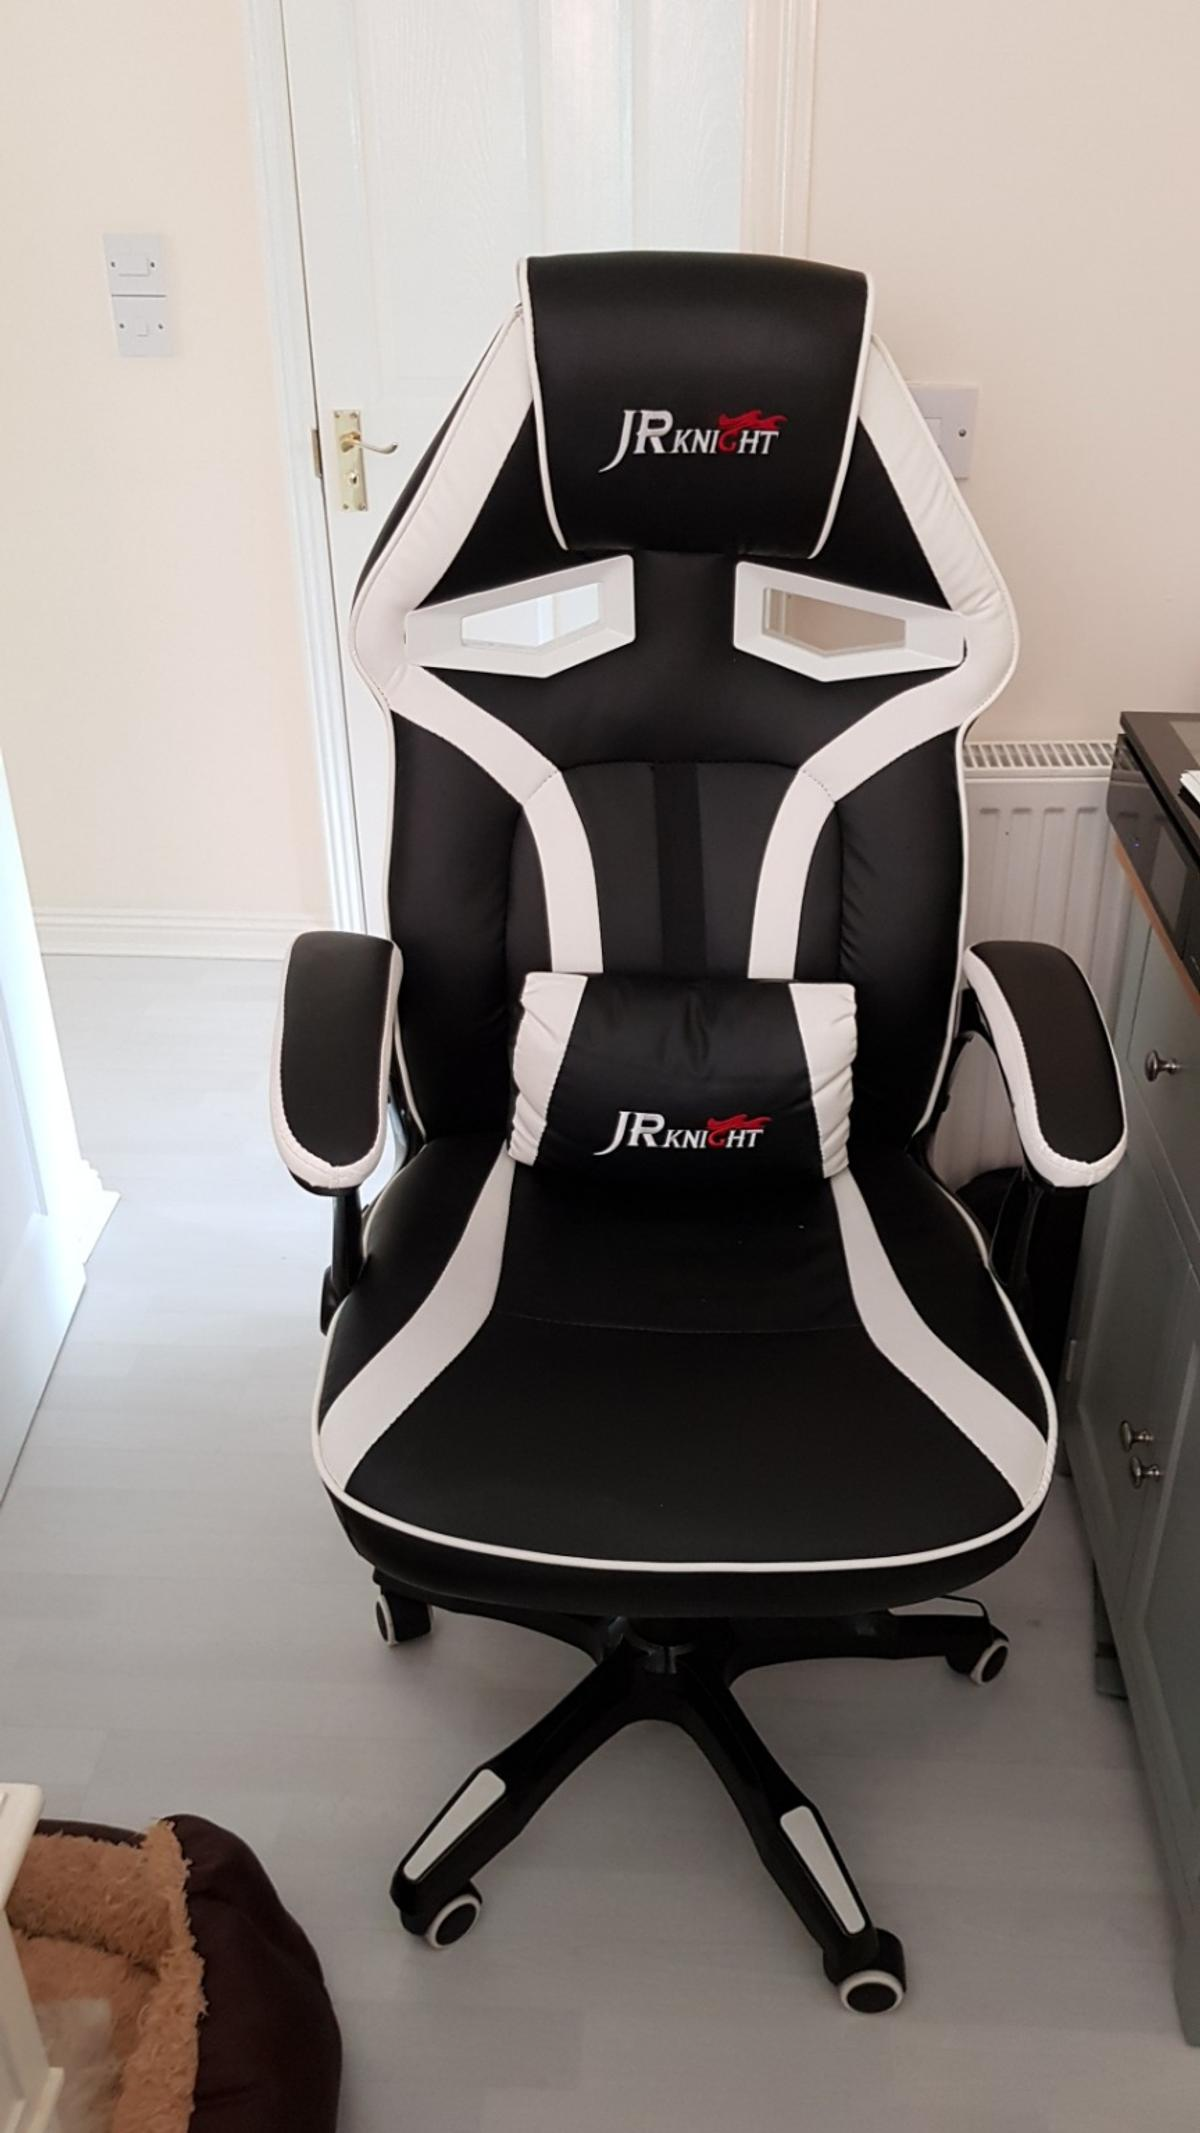 Prime Jr Knight Gaming Chair Lamtechconsult Wood Chair Design Ideas Lamtechconsultcom